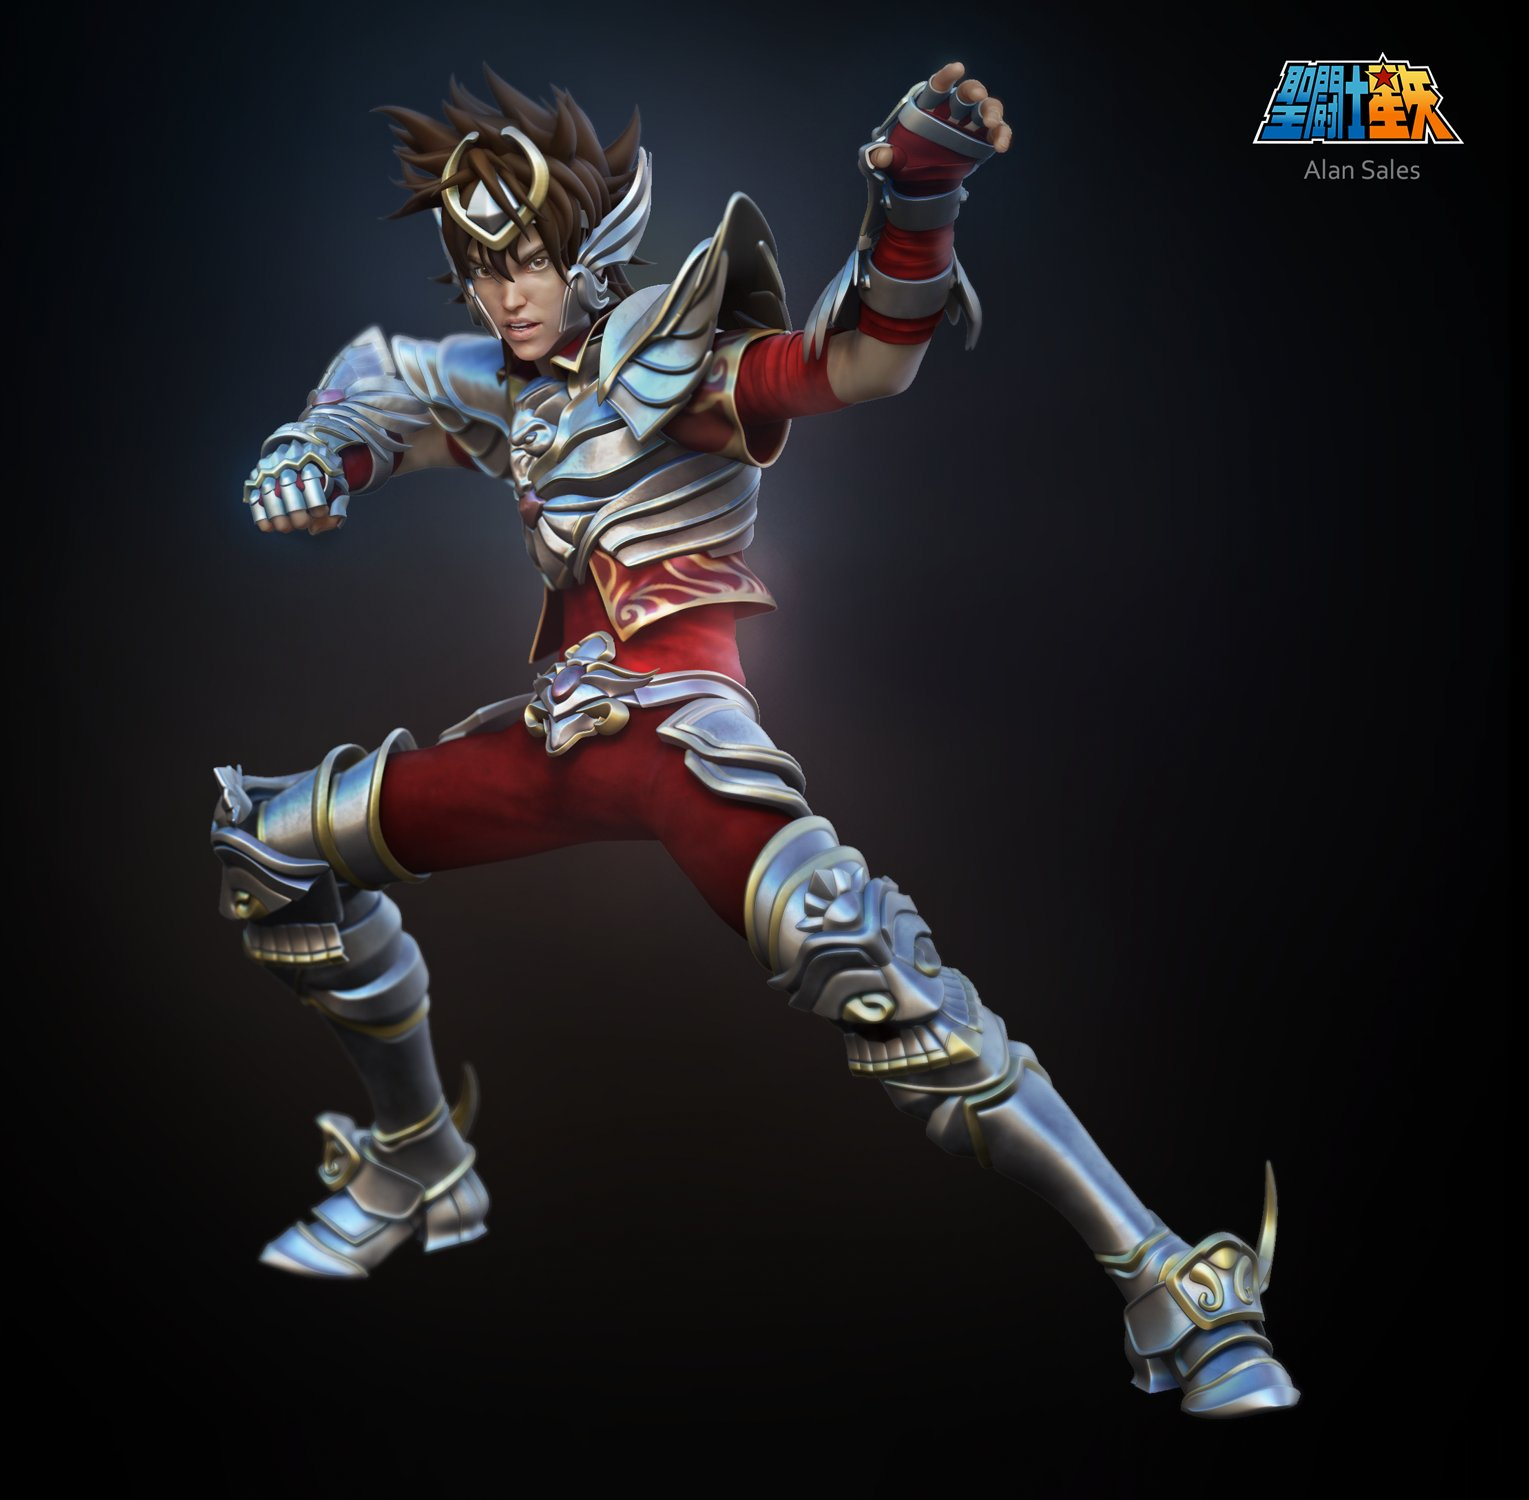 Artstation saint seiya anime 3d fan art challenge for Outer space 3d model